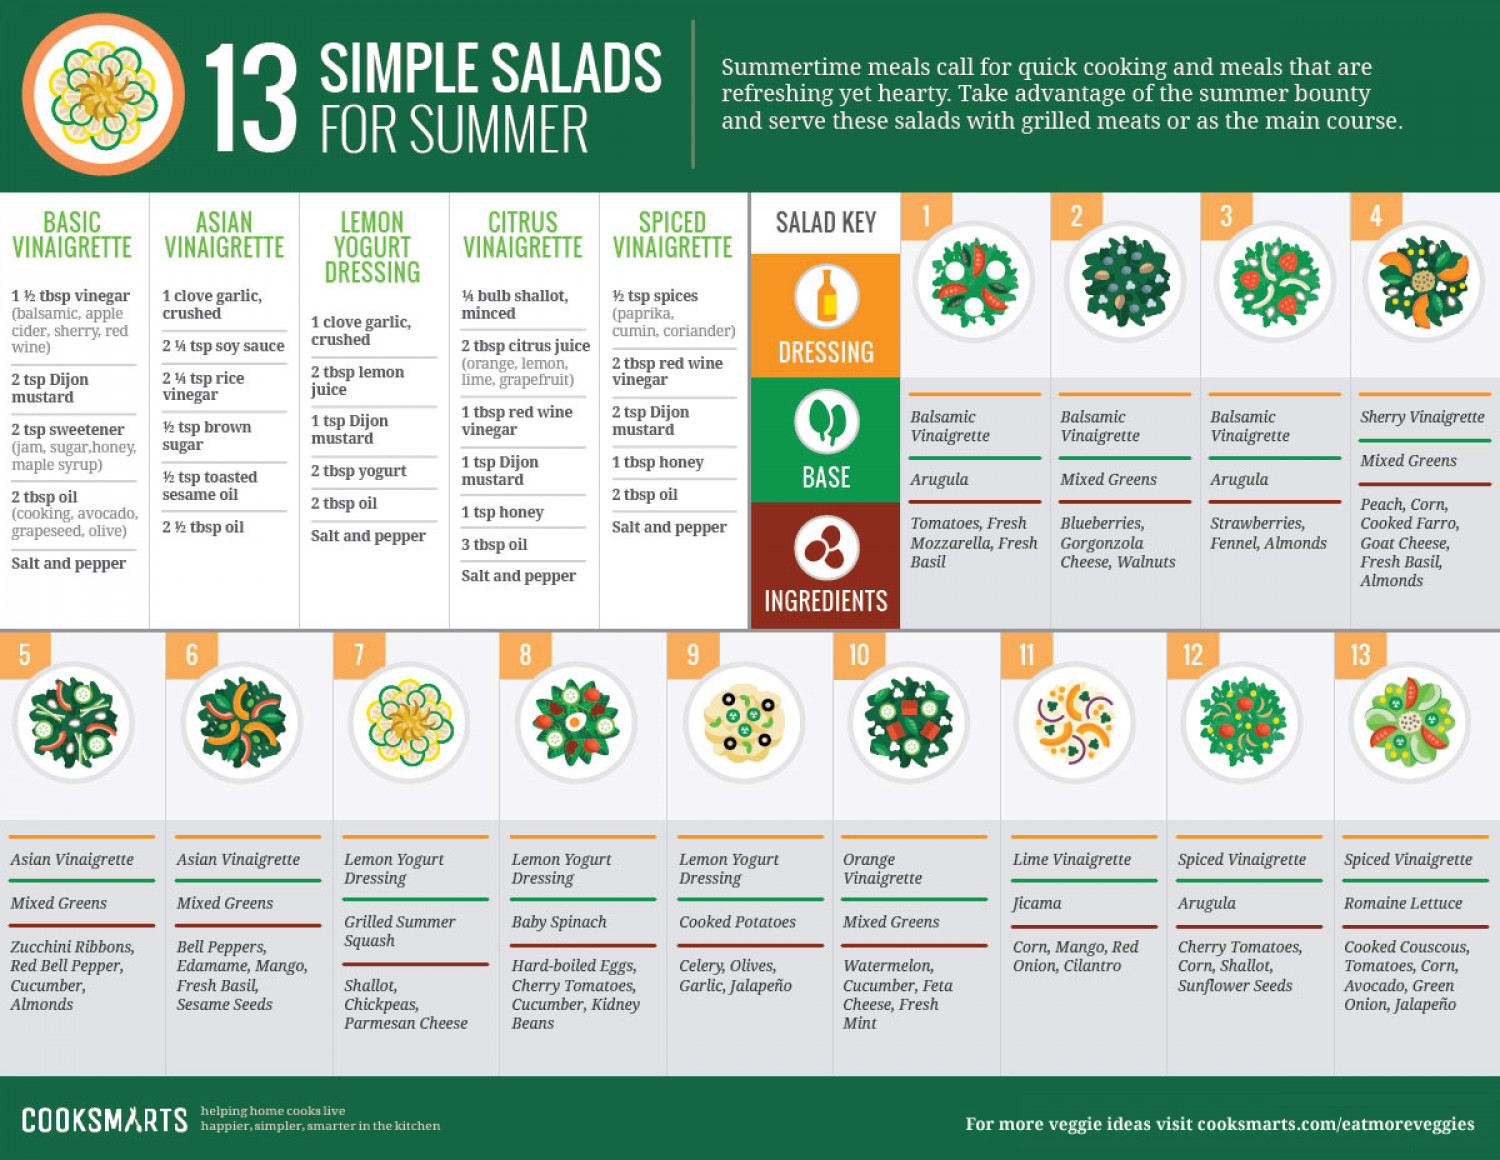 13 Simple Salads for Summer Infographic